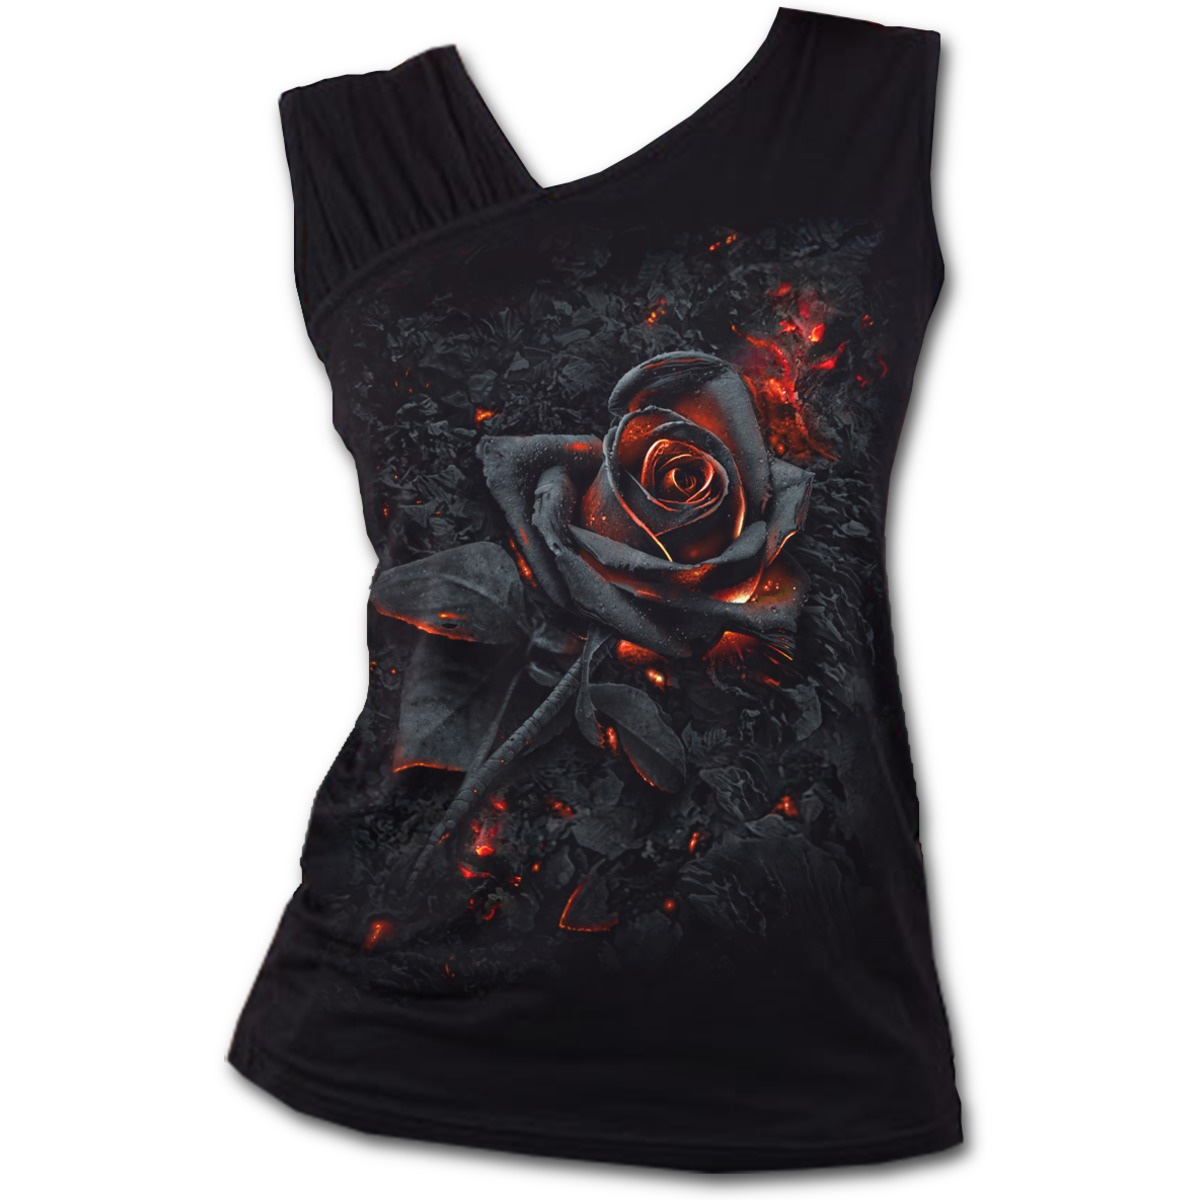 SPIRAL-DIRECT-Ladies-Black-Goth-BURNT-ROSE-Fire-Slant-Vest-Top-All-Sizes thumbnail 7